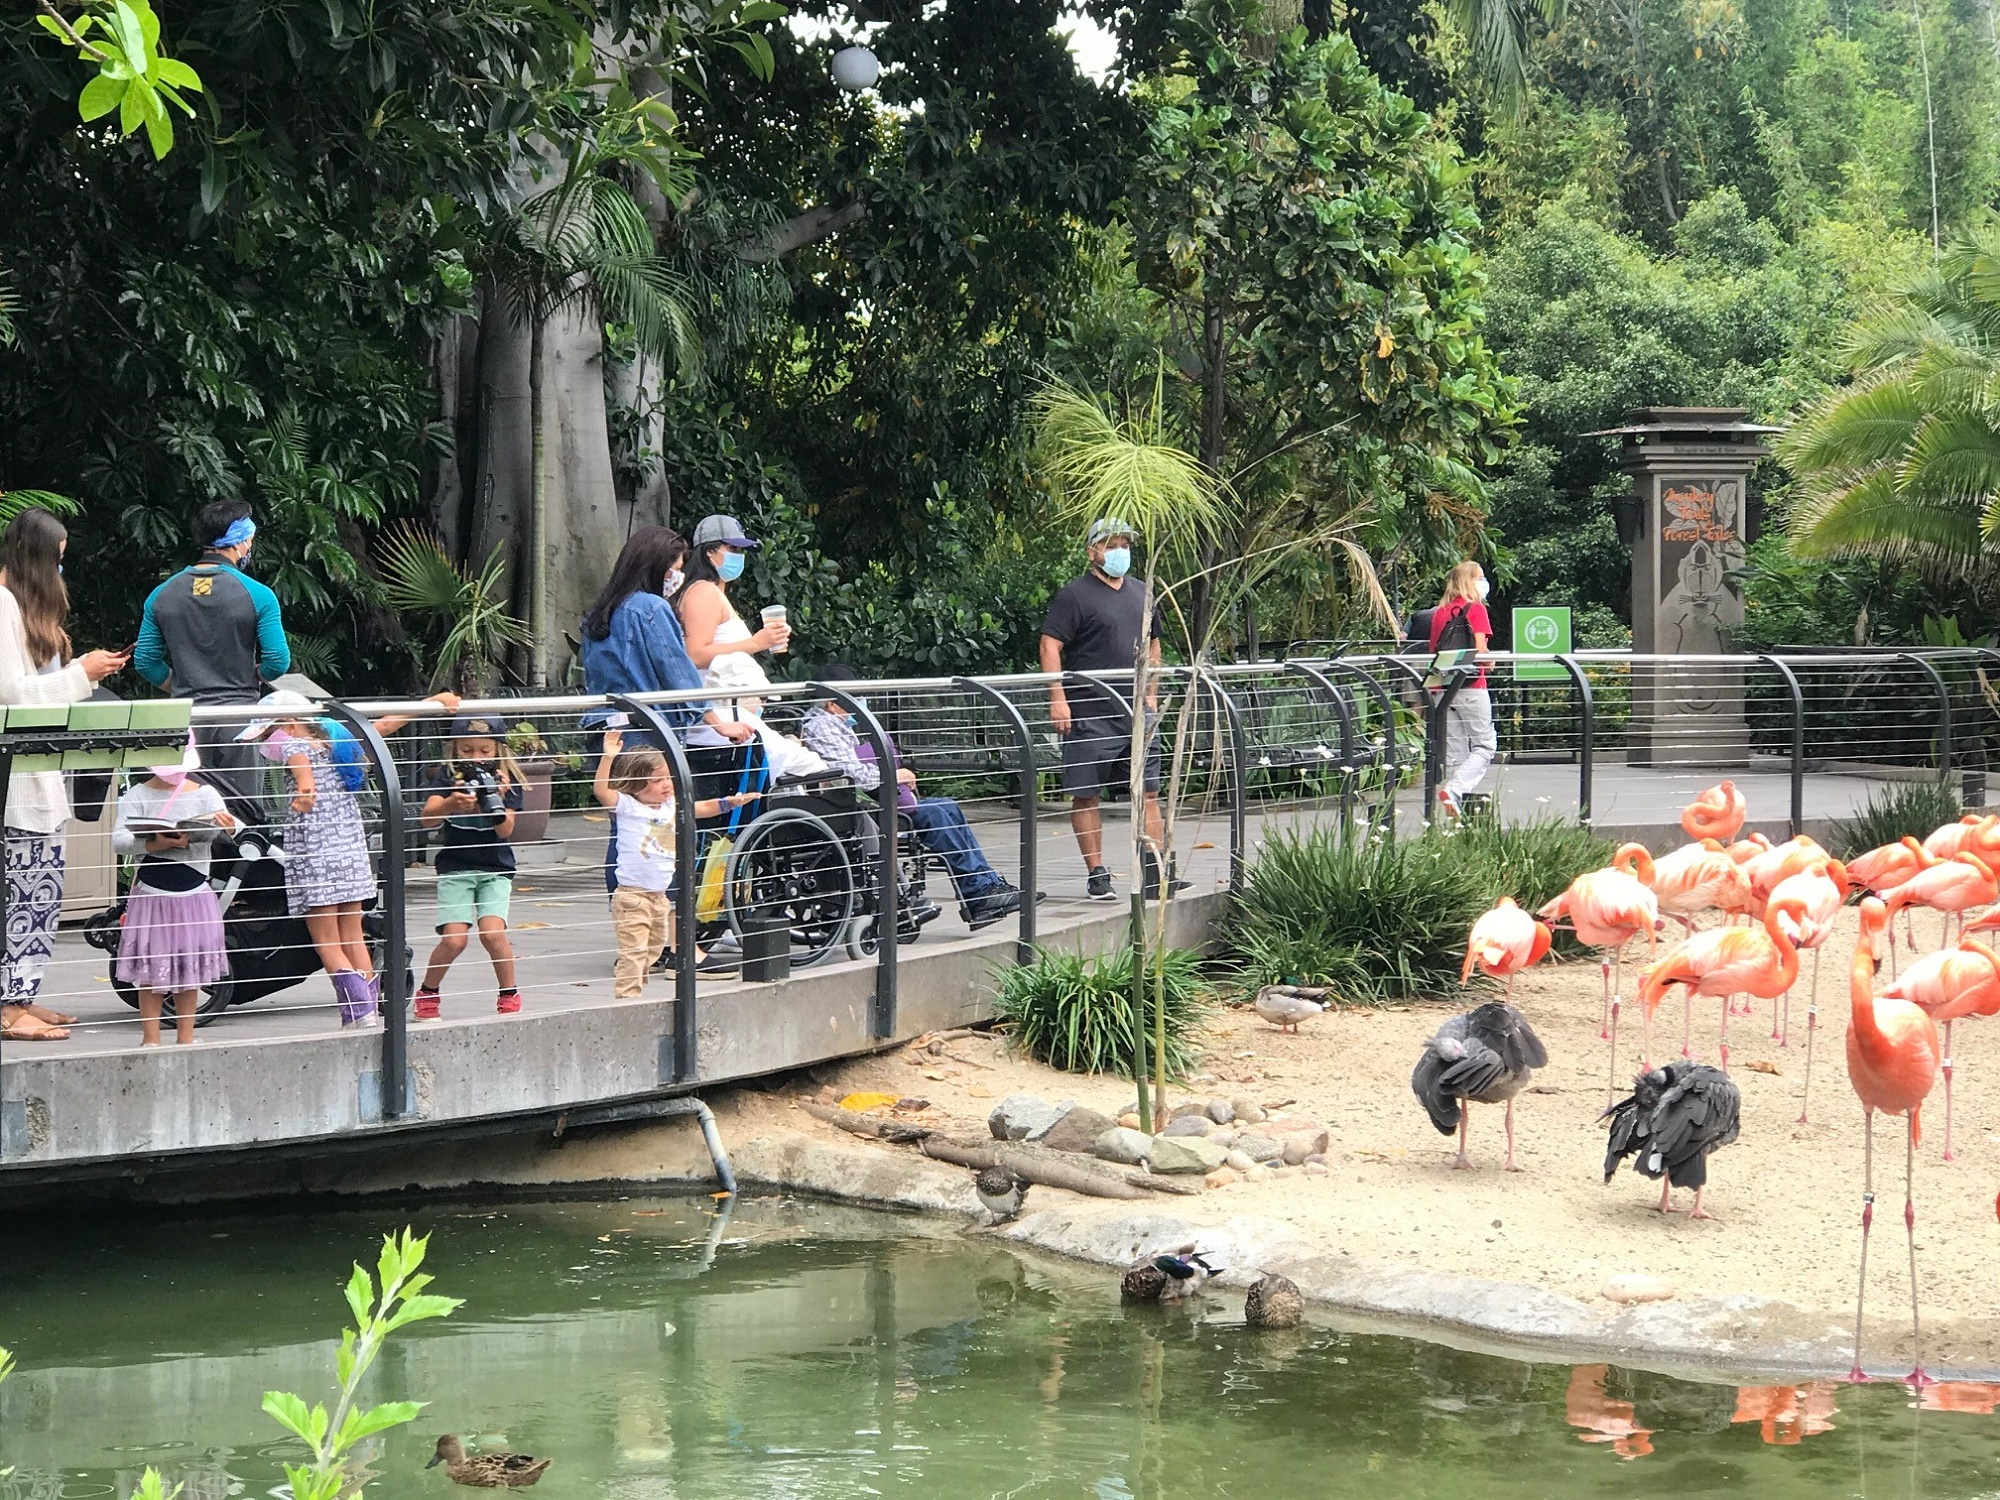 San Diego Zoo Christmas 2020 San Diego Zoo Reopens as Sanctuary for Cooped Up Families